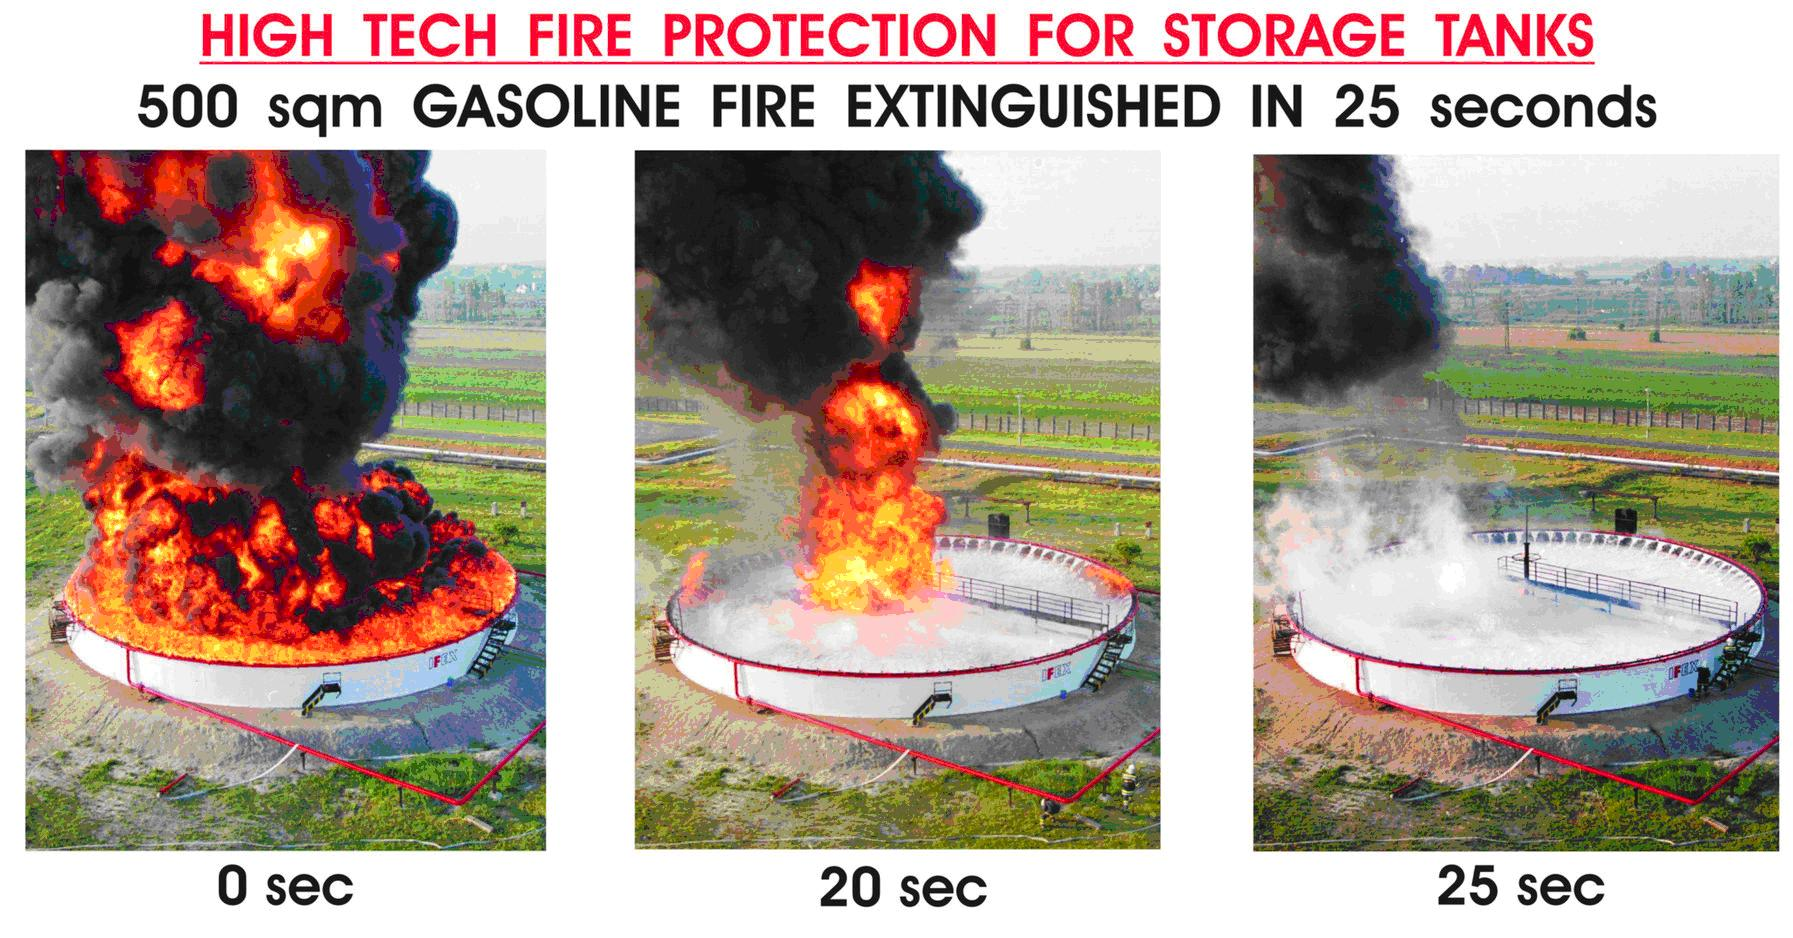 Pressurized Foam Fire Protection System For Large Diameter